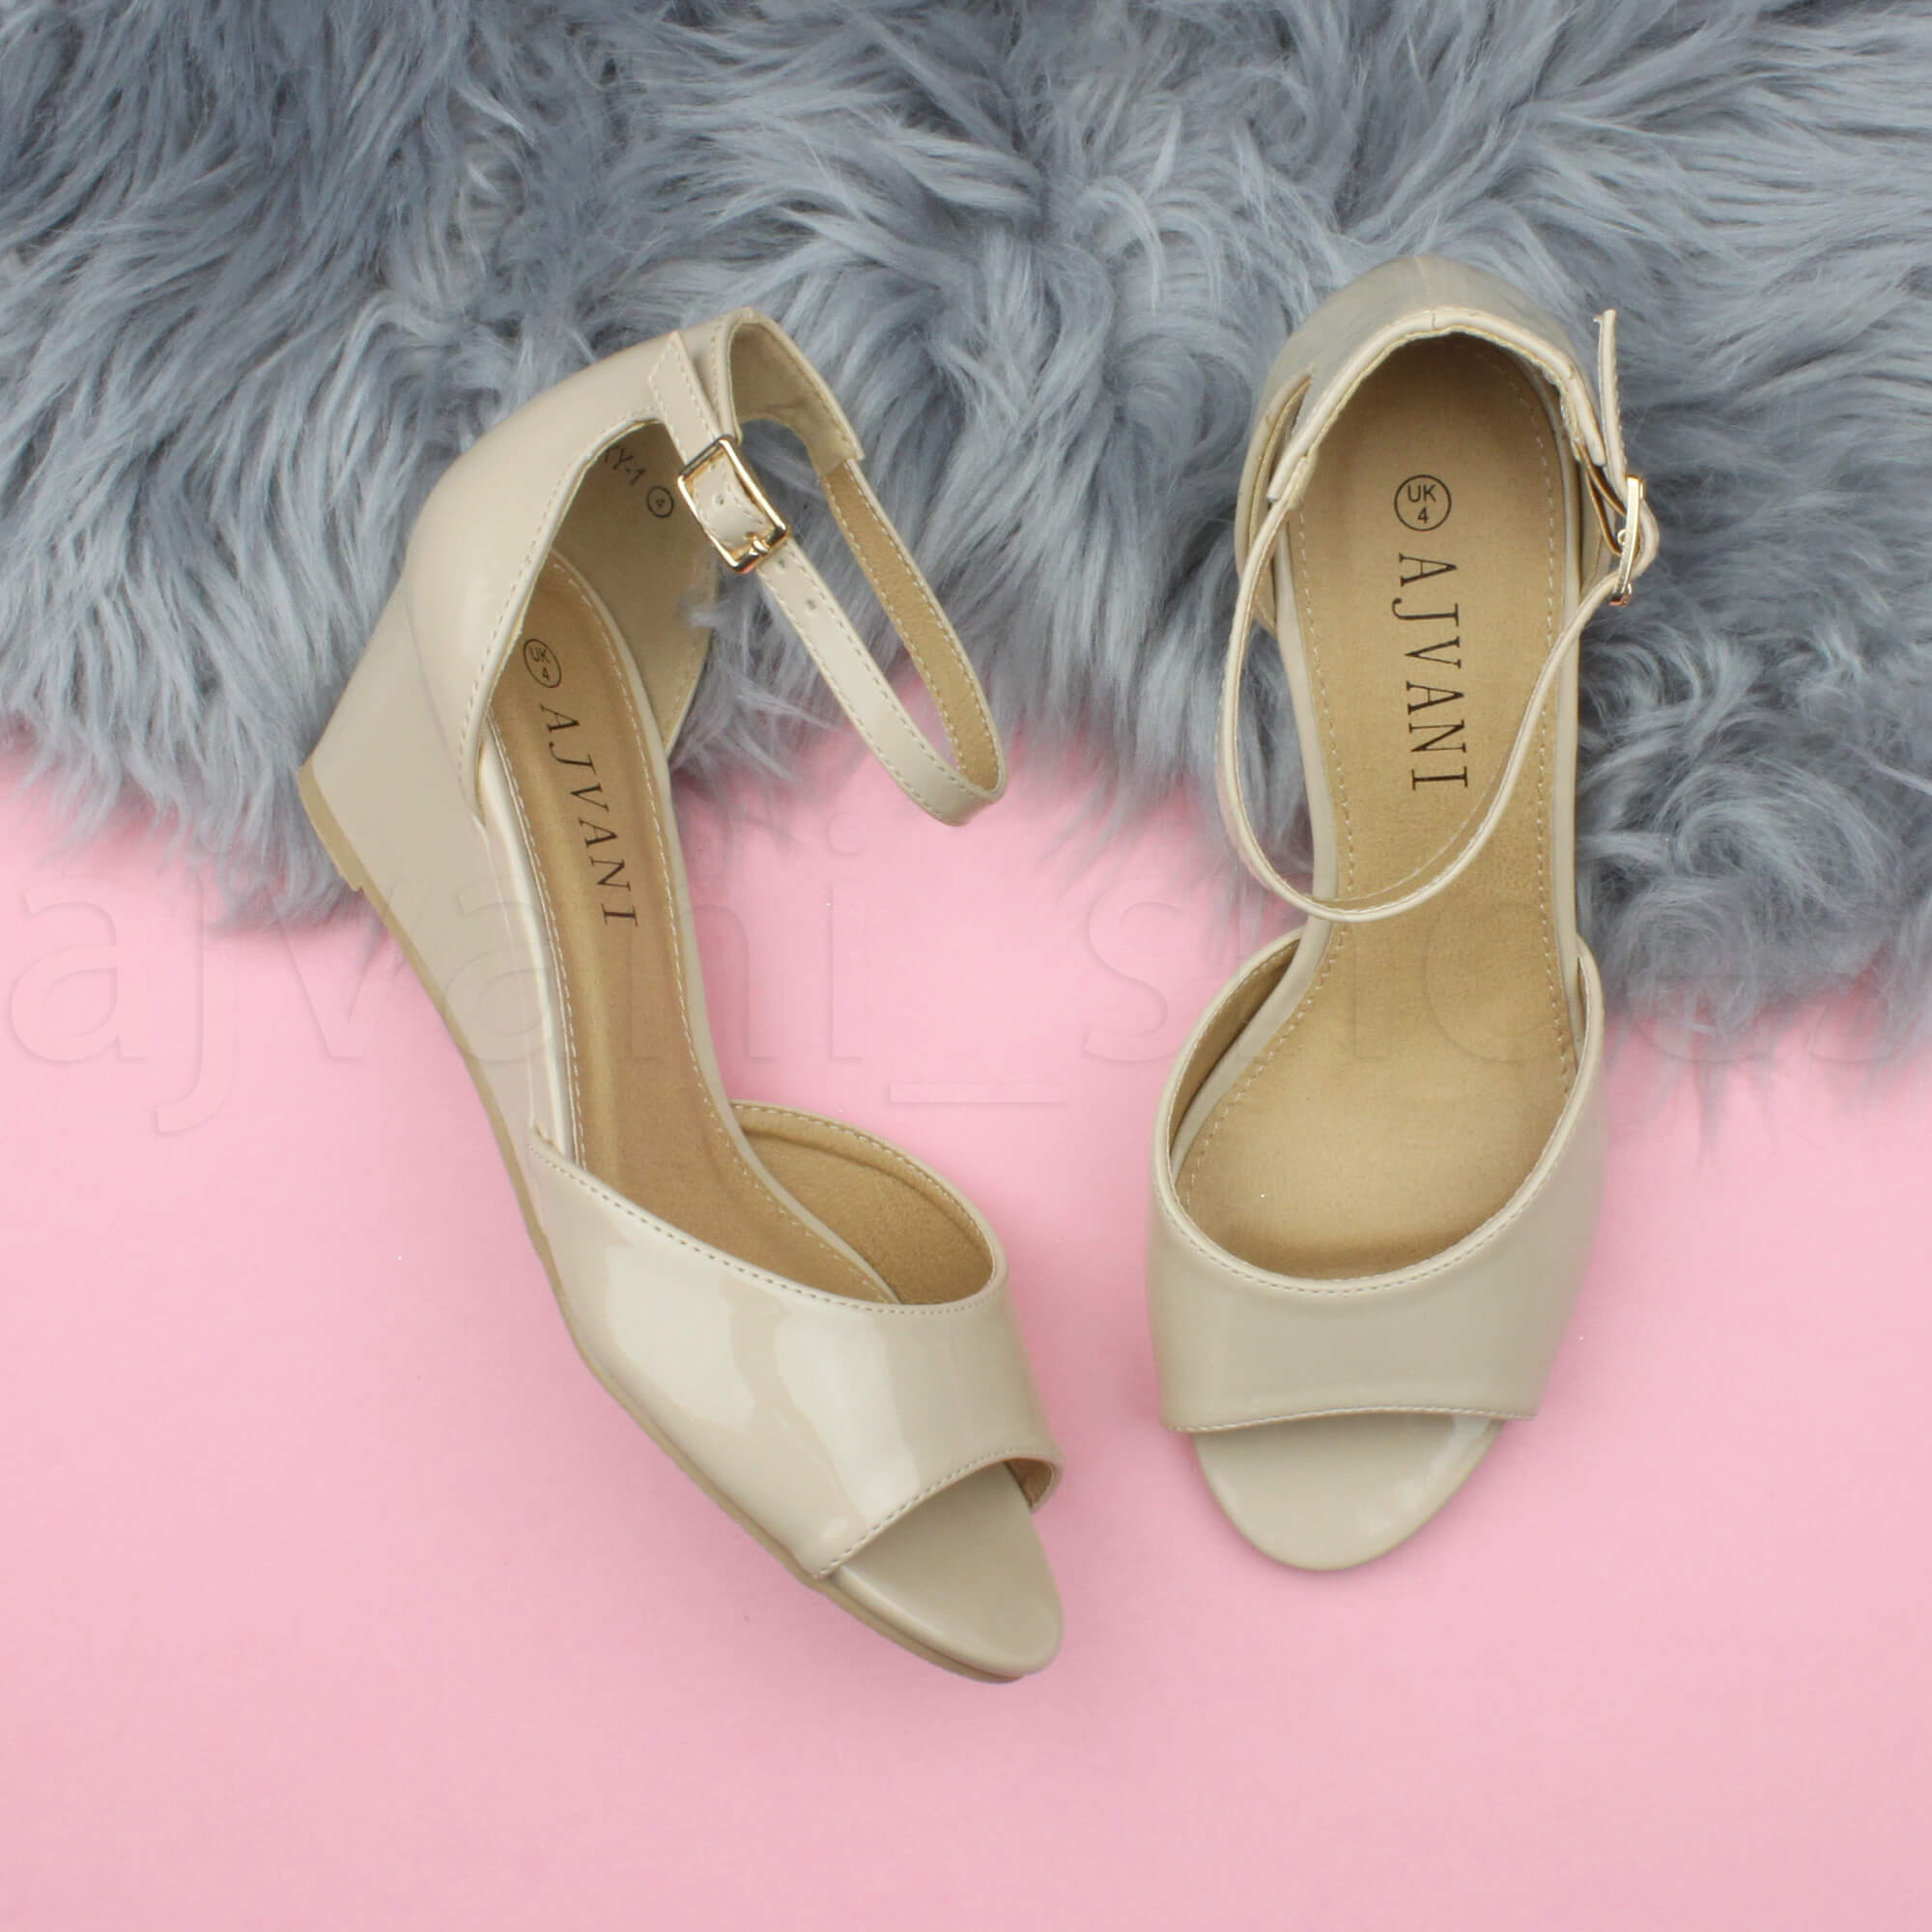 WOMENS-LADIES-LOW-MID-WEDGE-HEEL-ANKLE-STRAP-SMART-CASUAL-EVENING-SANDALS-SIZE thumbnail 101